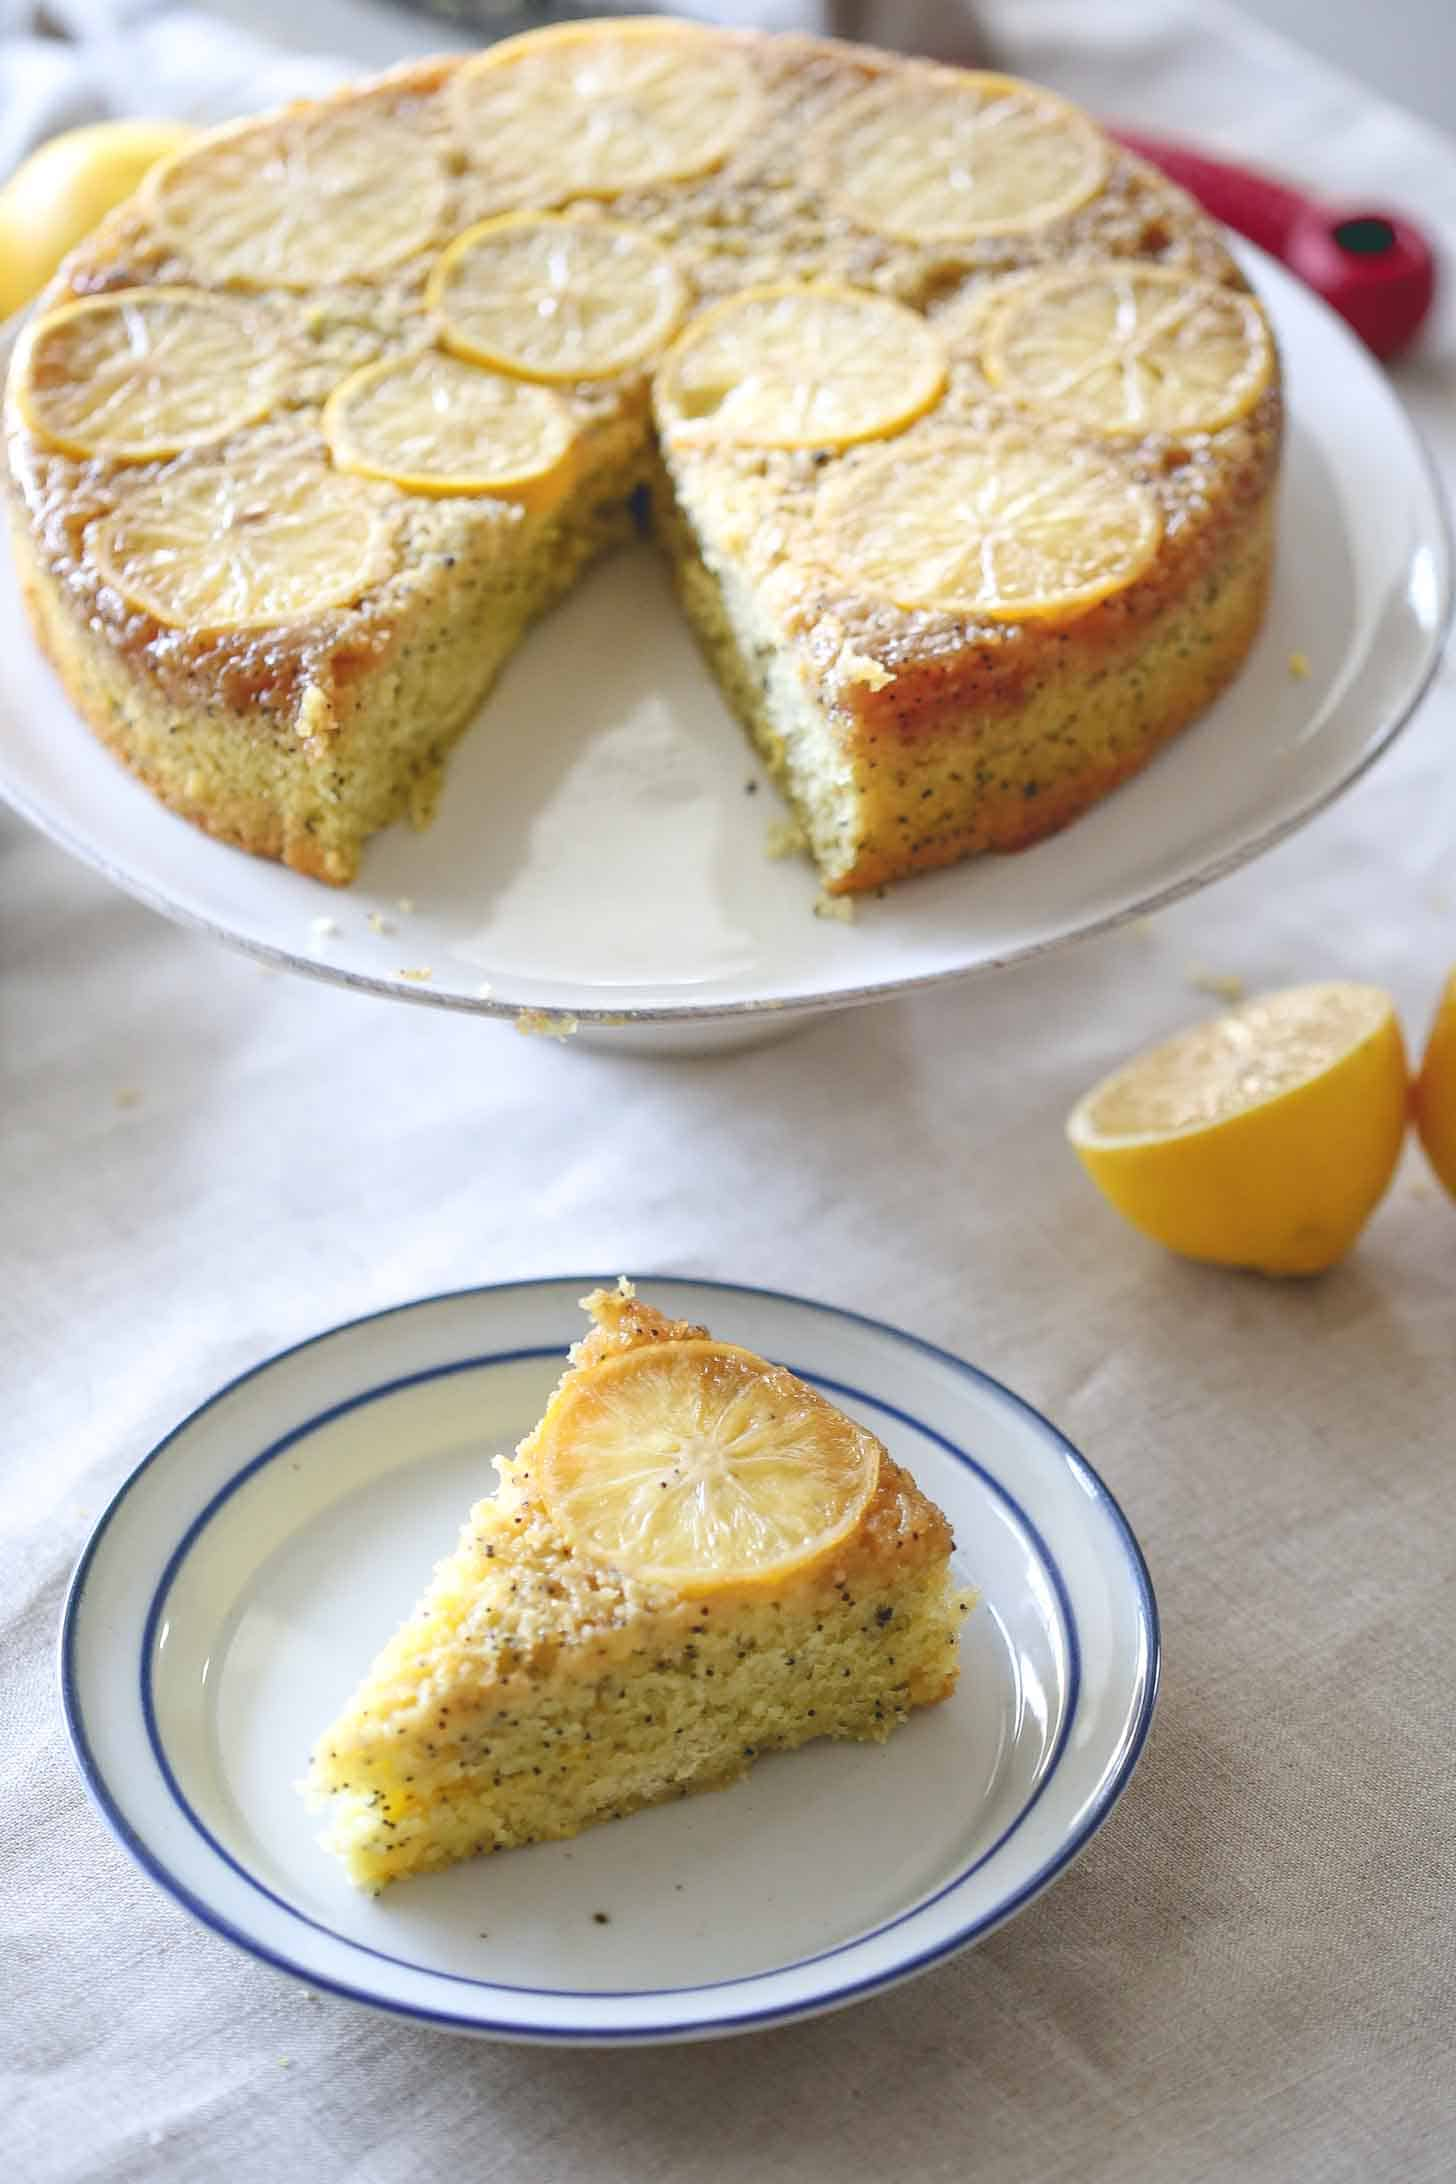 a slice of Meyer Lemon Upside Down Cake on a white plate